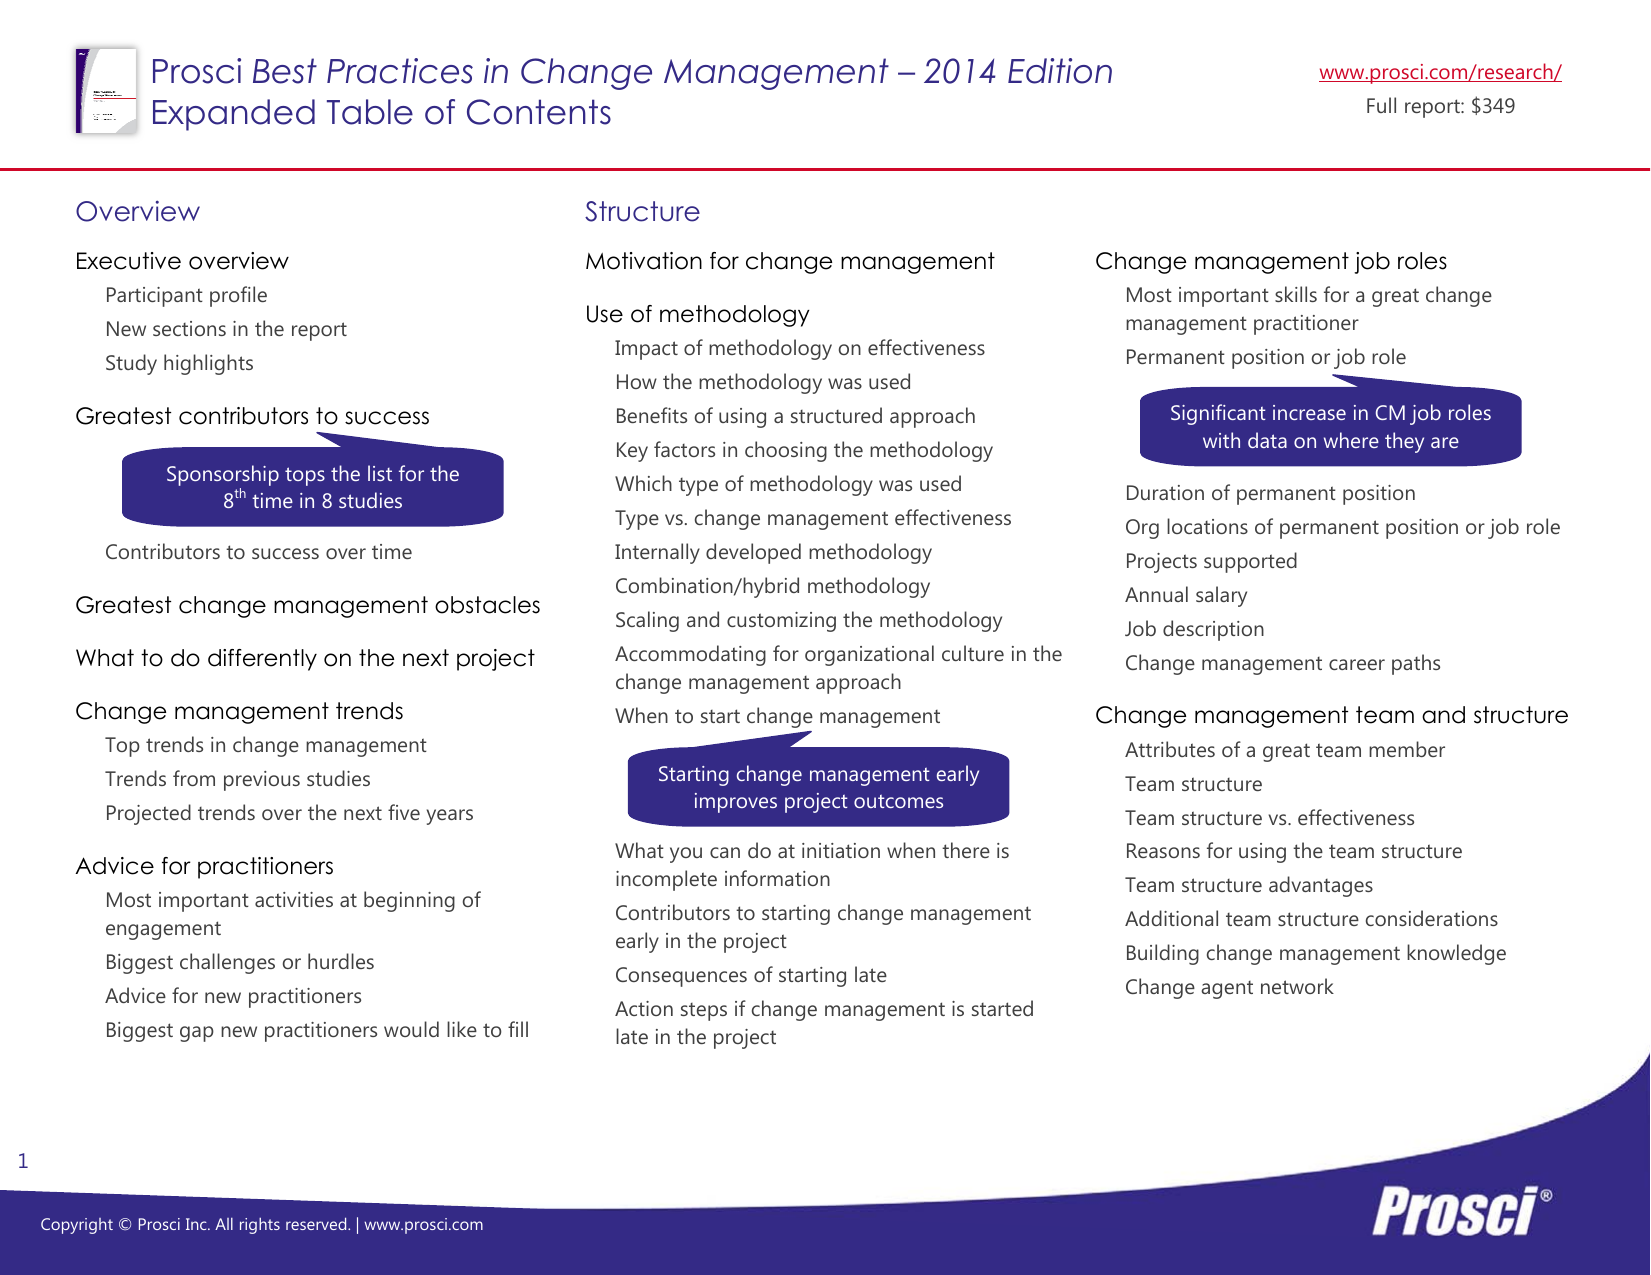 Best Practices in Change Management – 2014 Edition Overview